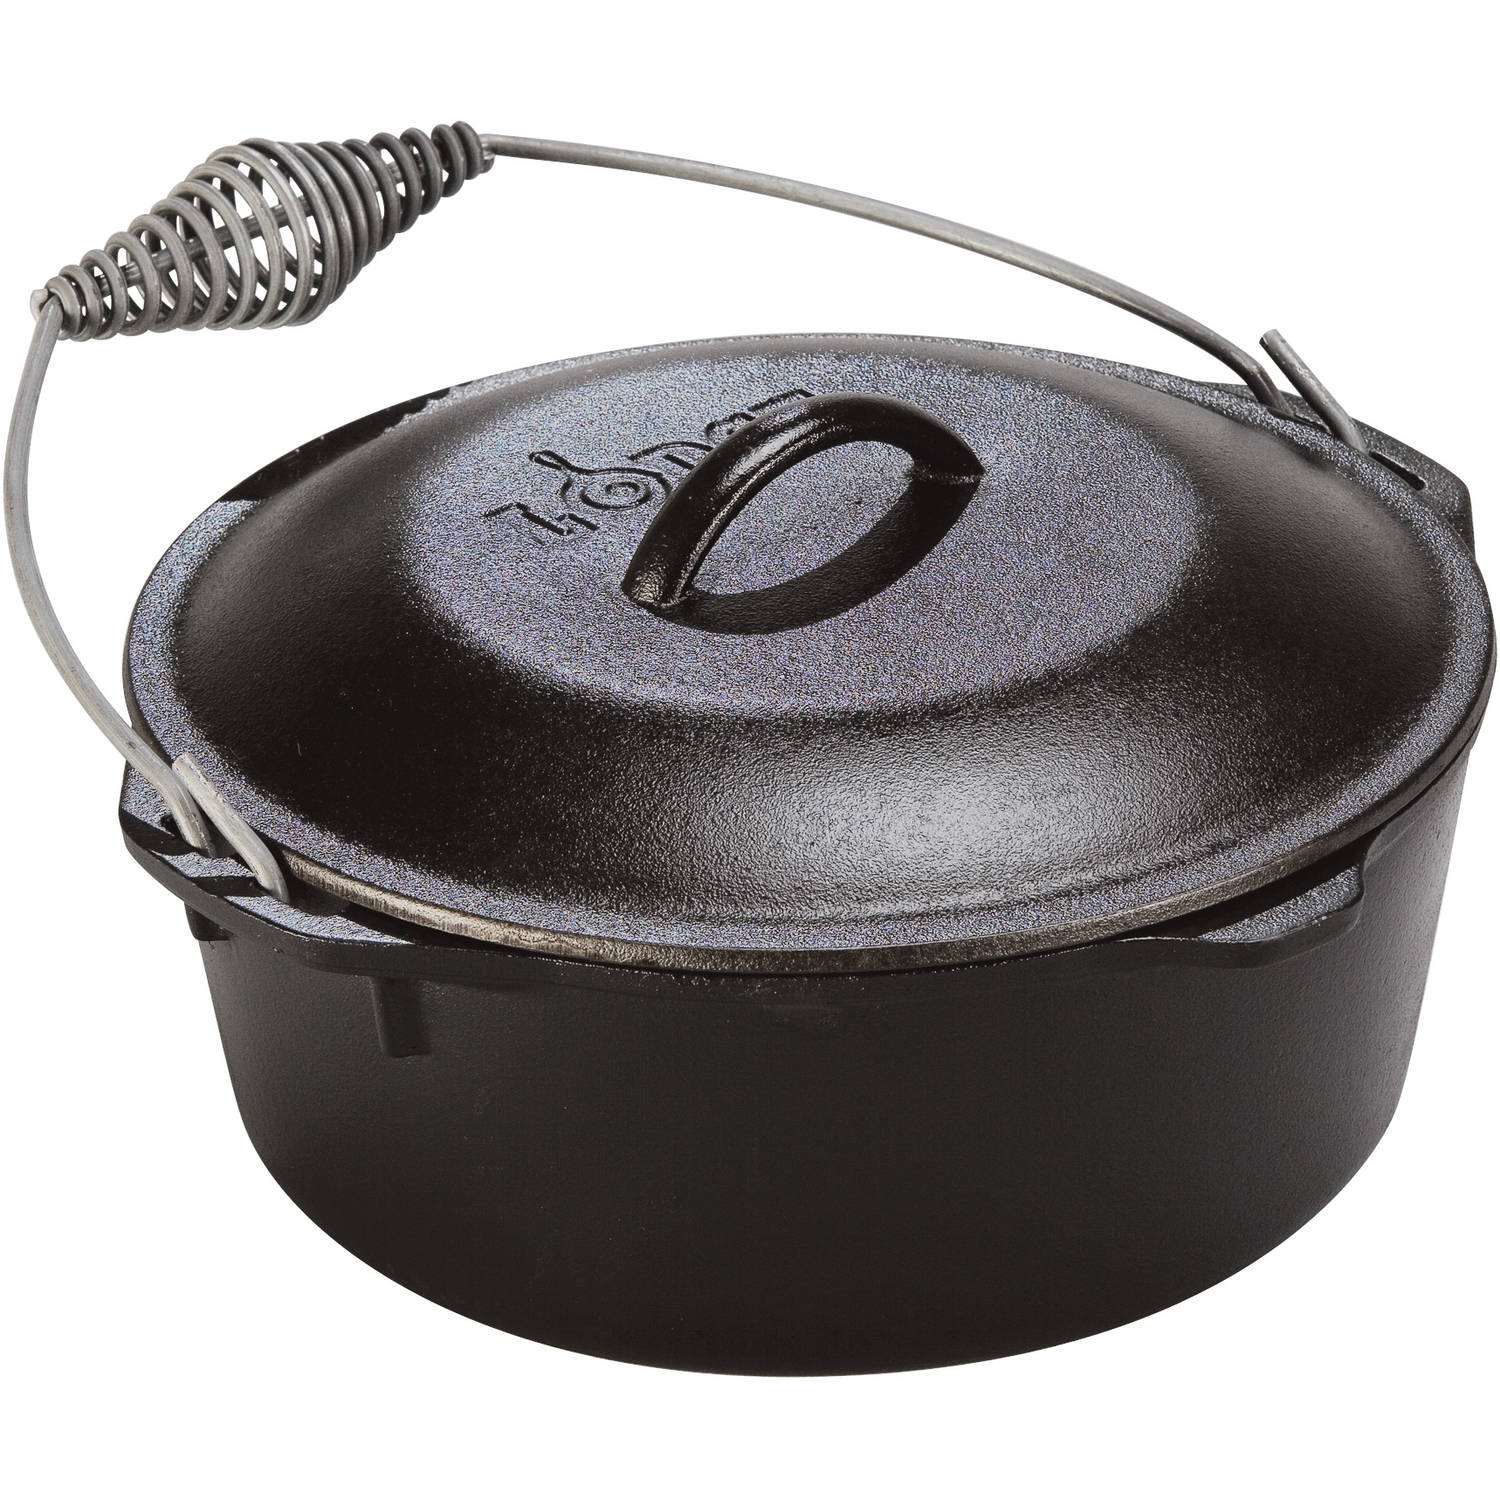 Cheap cajun cookware dutch ovens 6 quart seasoned cast iron dutch oven - Cheap Cajun Cookware Dutch Ovens 6 Quart Seasoned Cast Iron Dutch Oven 13